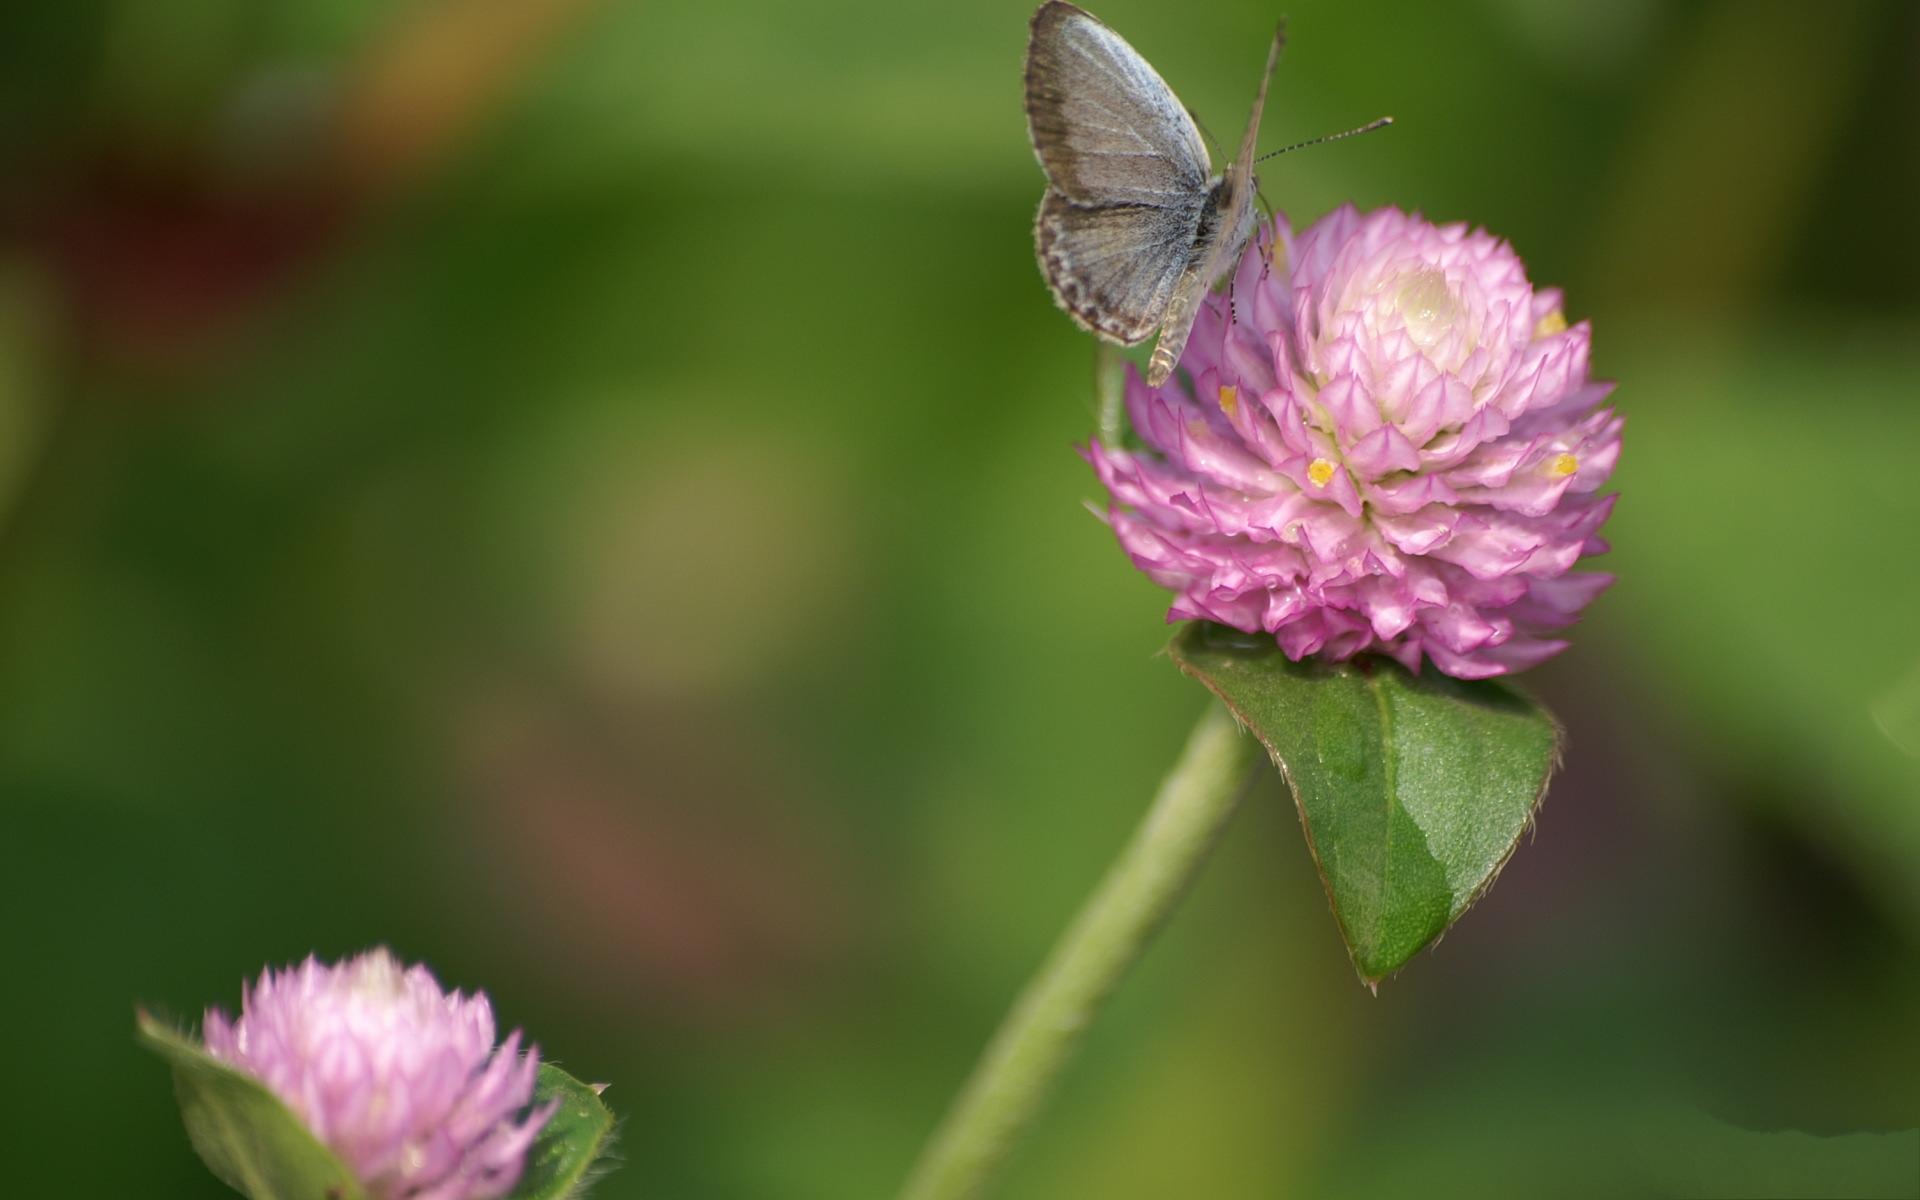 Digital Flower Photo, Blooming Flowers and Butterfly, Great Lovers--1920X1200 free wallpaper download